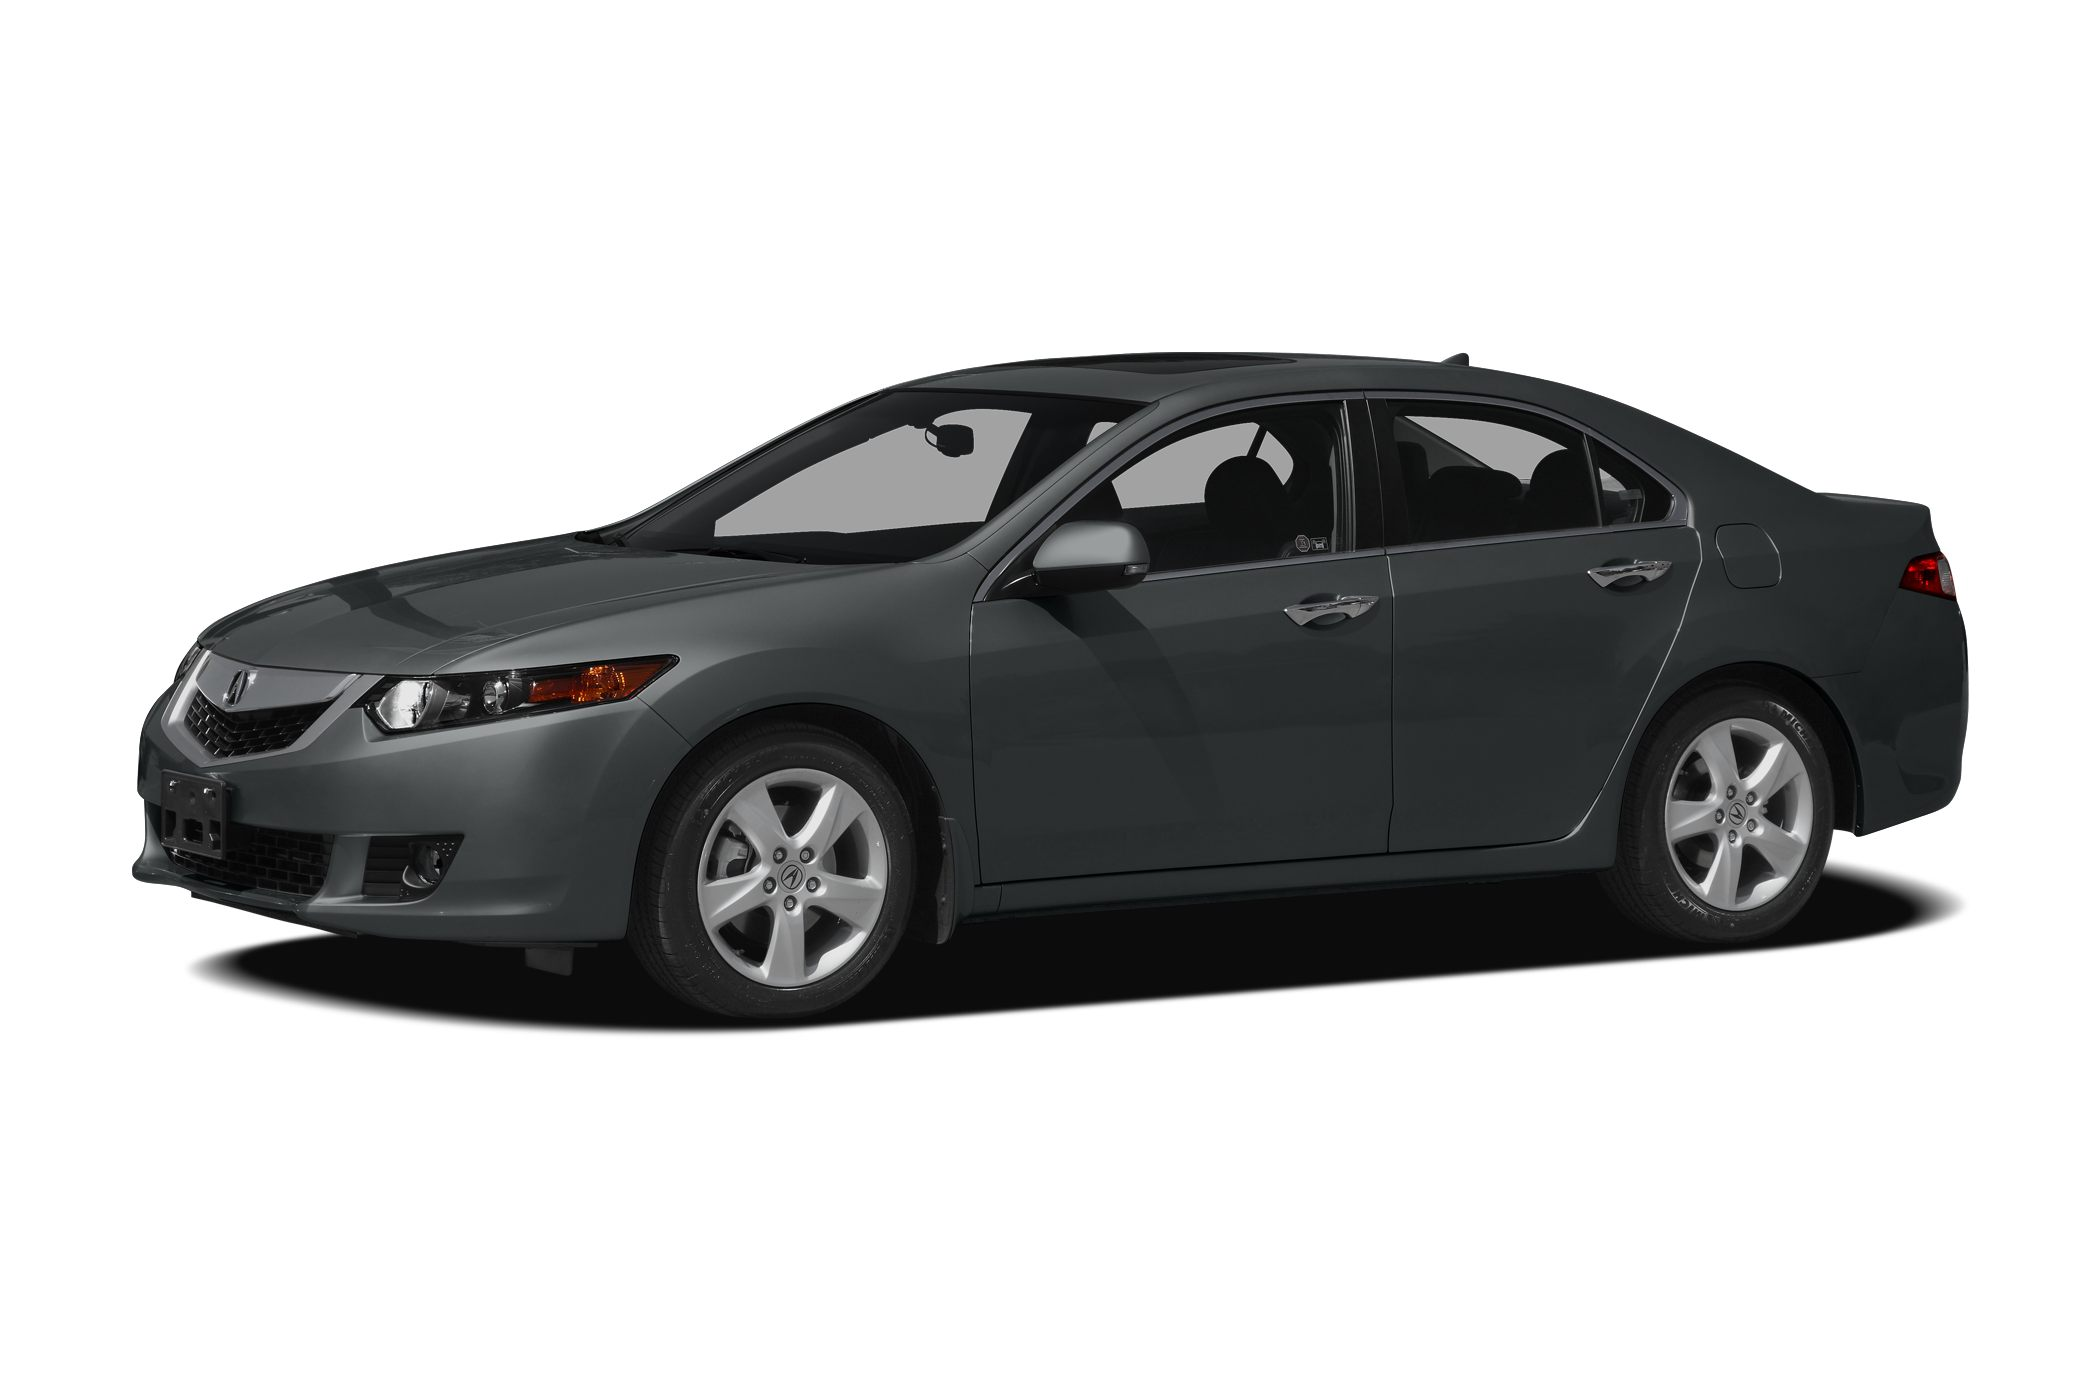 2009 Acura TSX Sedan for sale in Lancaster for $16,998 with 62,387 miles.